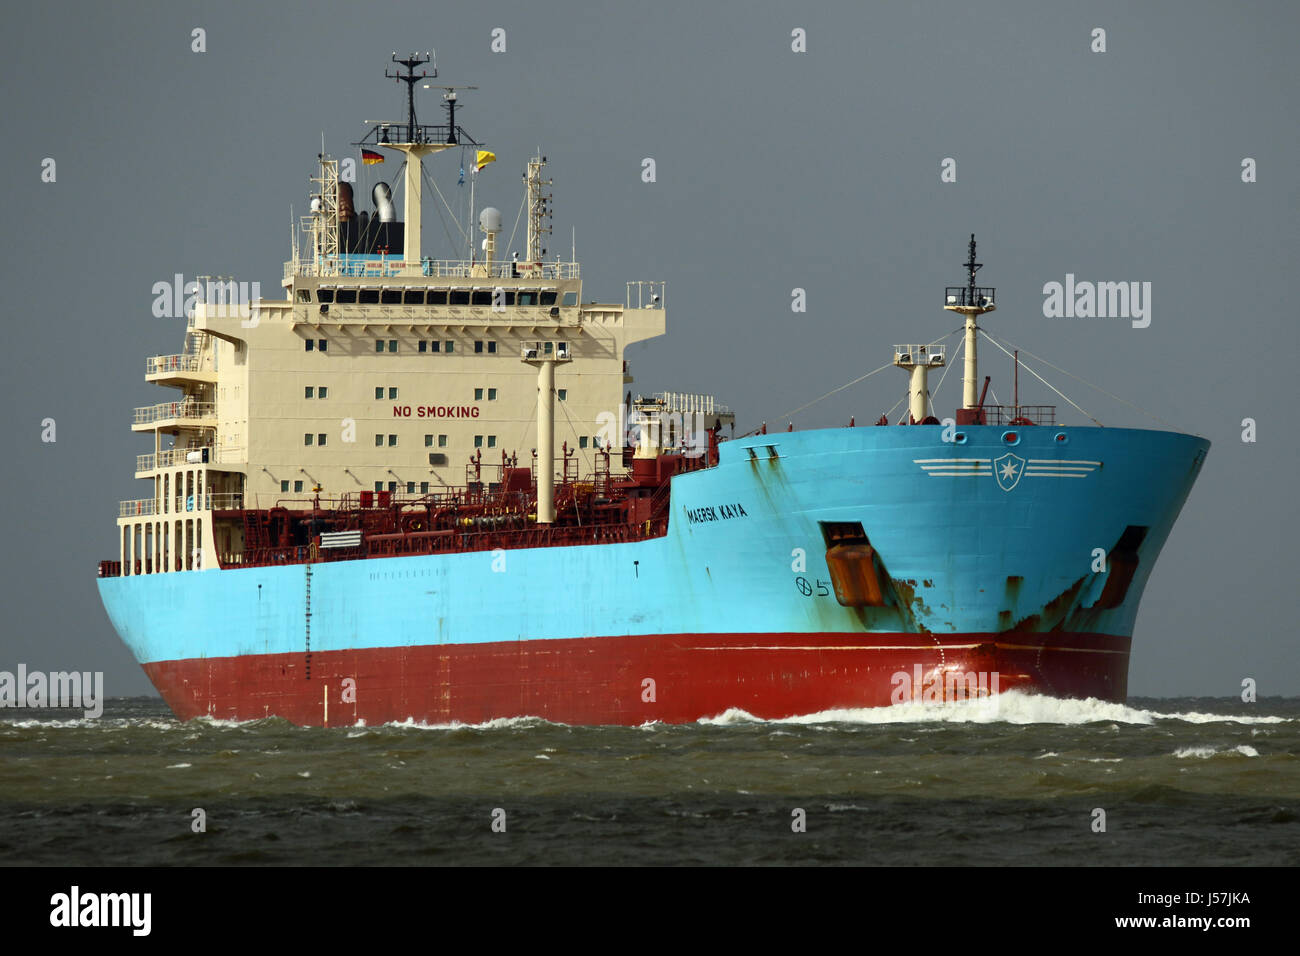 The tanker Maersk Kaya passes Cuxhaven on the Elbe. - Stock Image